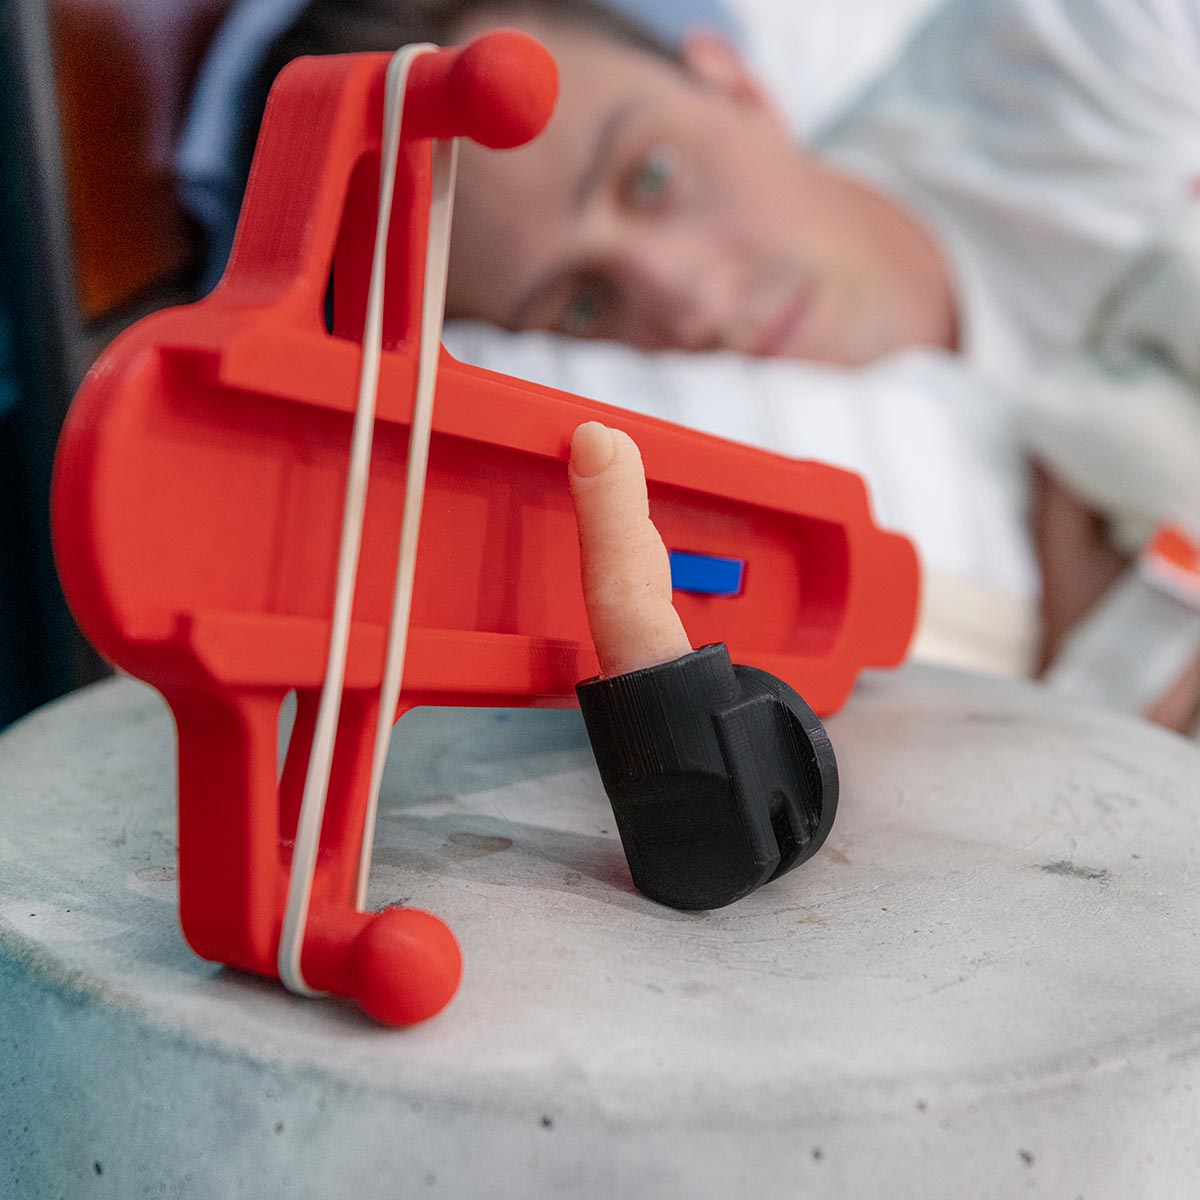 Bedtime Finger Blaster - Unnecessary Inventions